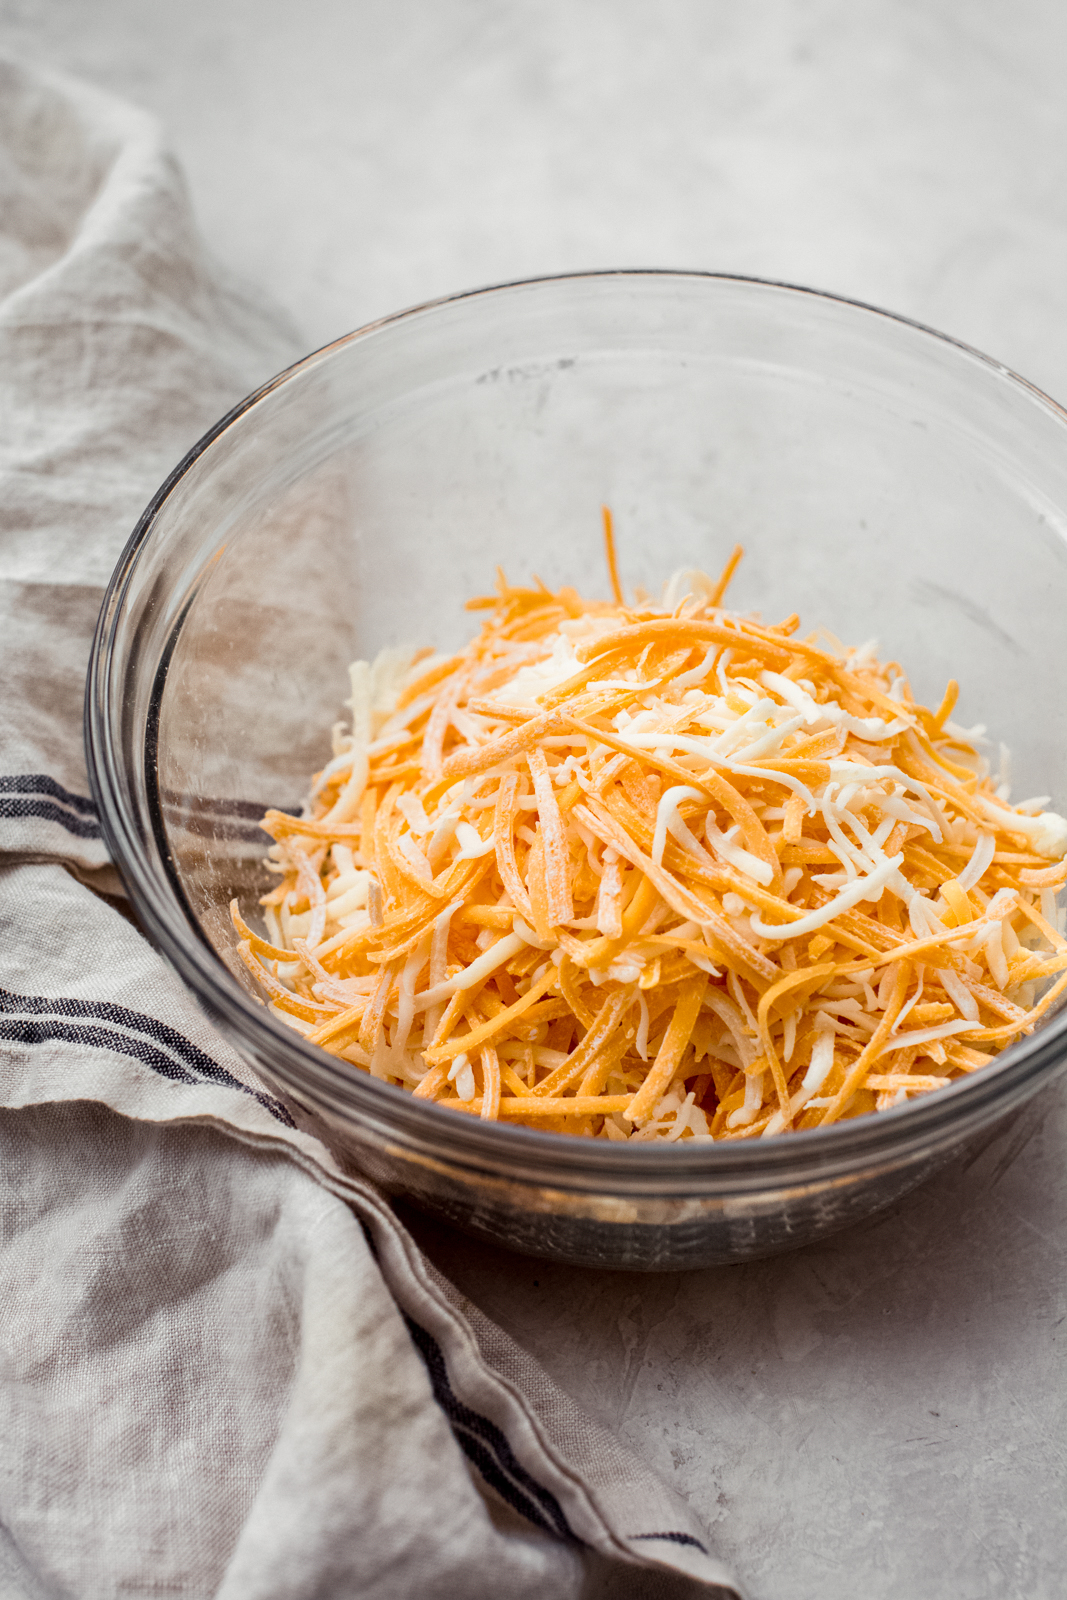 shredded cheese in glass bowl